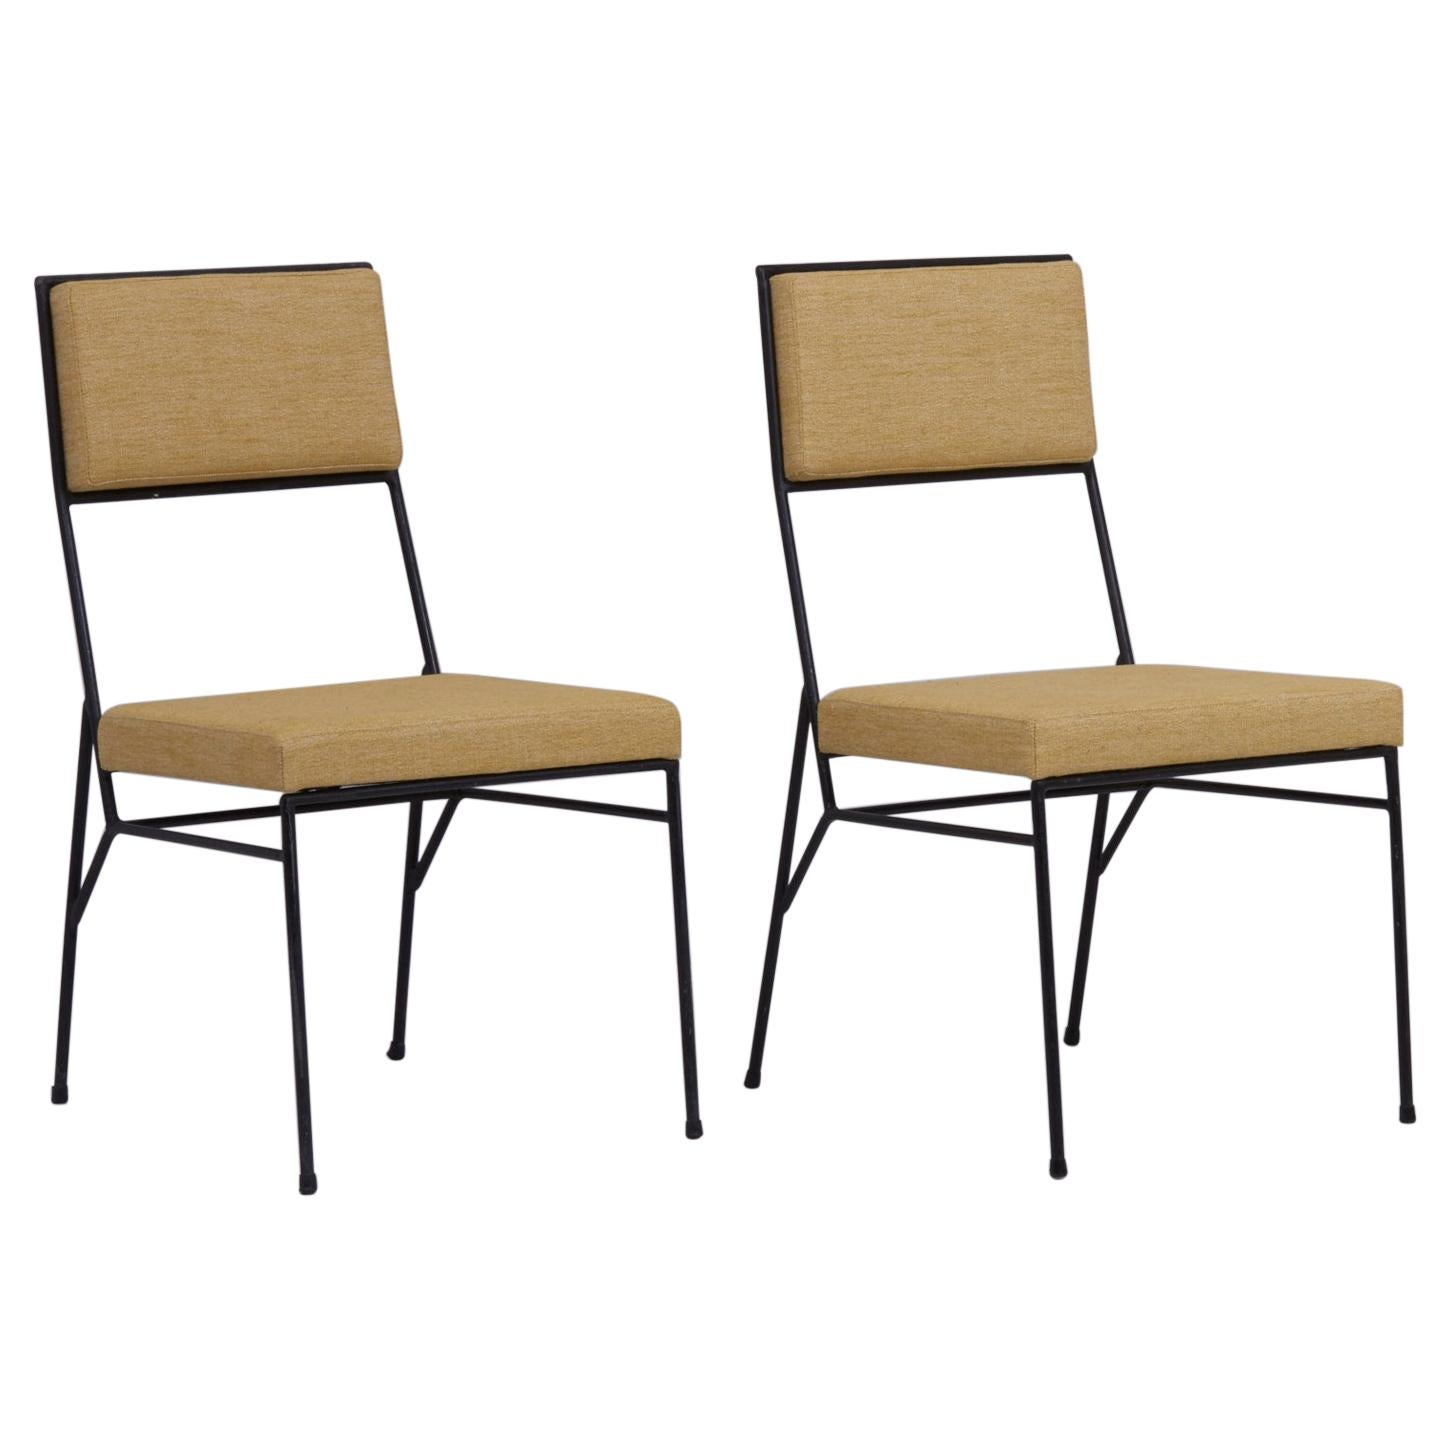 Set of 2 Wrought Iron Chairs by Paul McCobb for Arbuck, 1950s, US